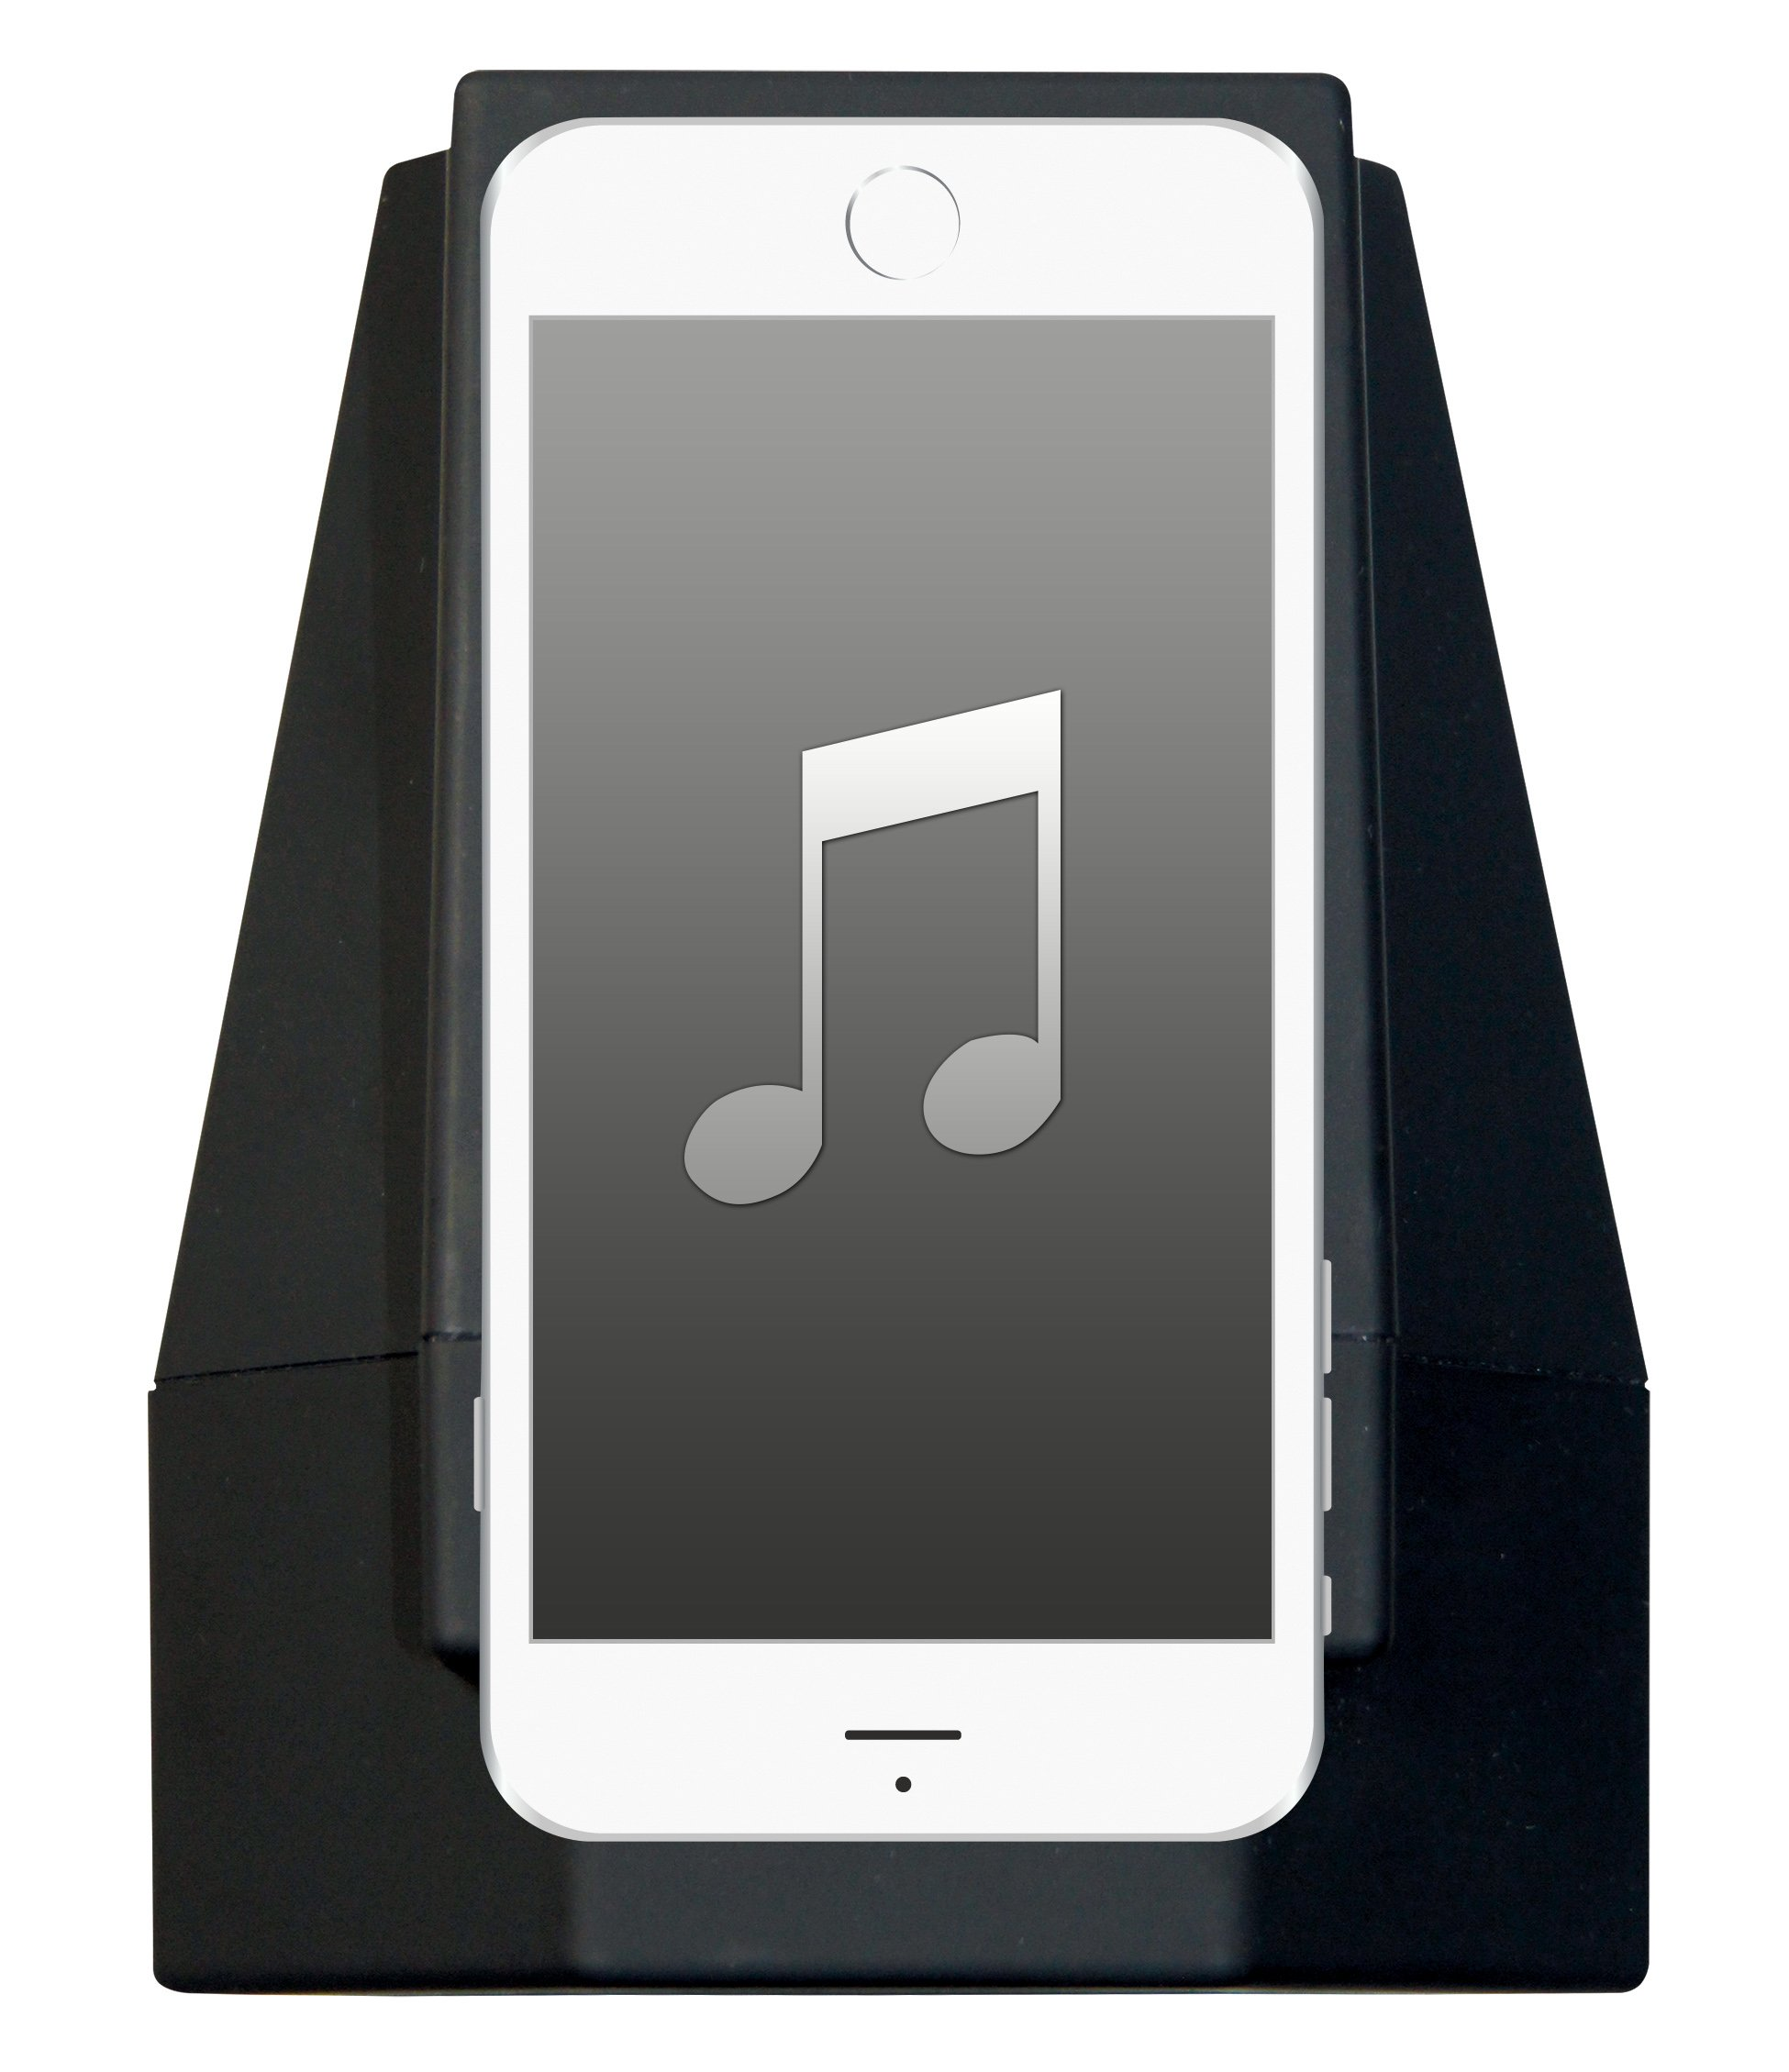 BoomTouch Wireless Touch Portable Speaker Boom Box (Black) by Allstar Innovations (Image #3)